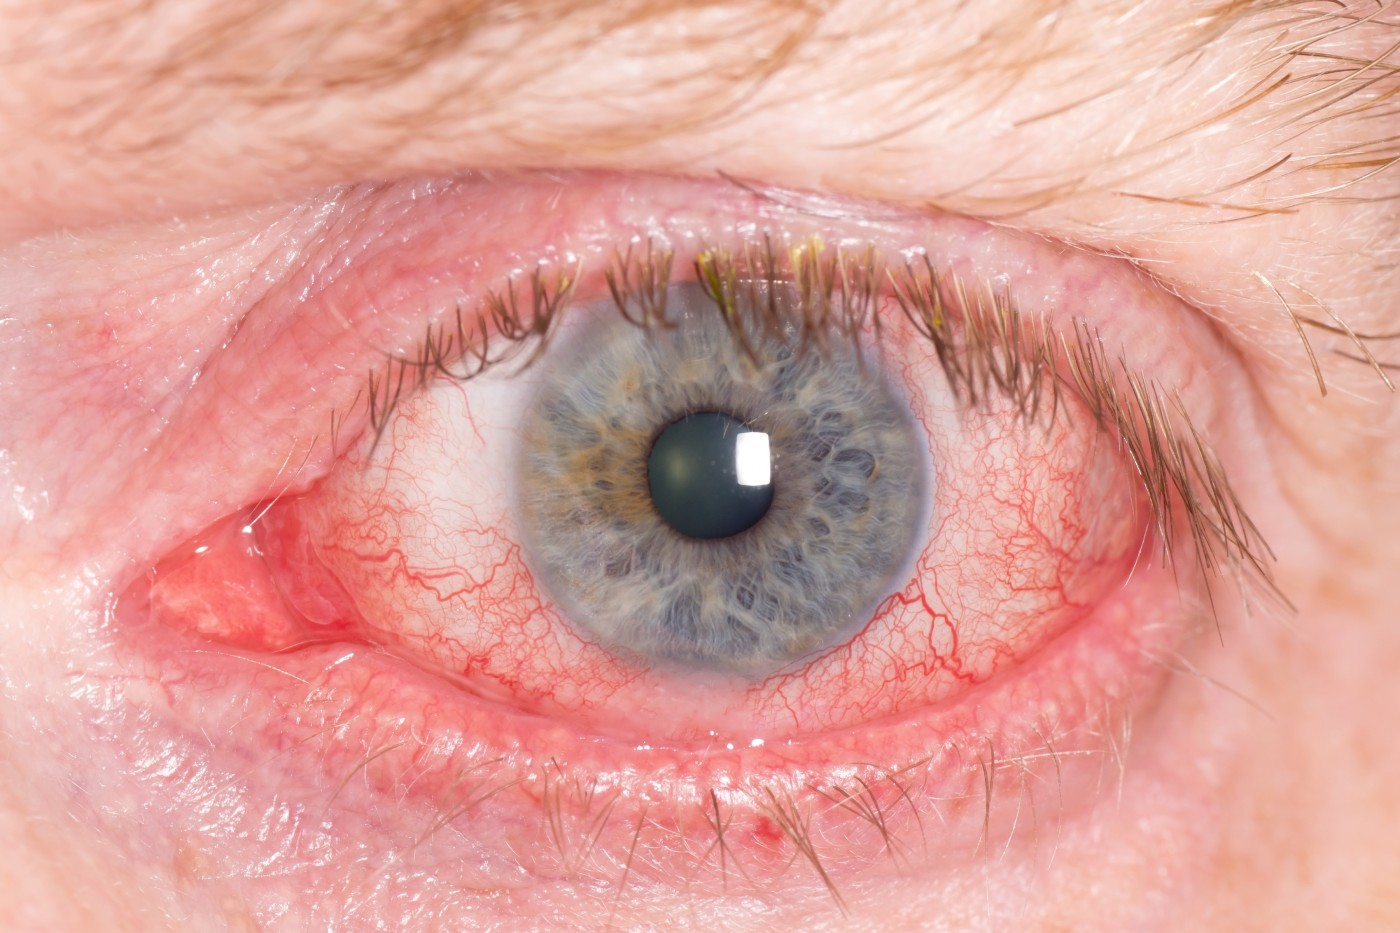 NSAIDs Used To Treat Inflammation and Pain After Cataract Surgery